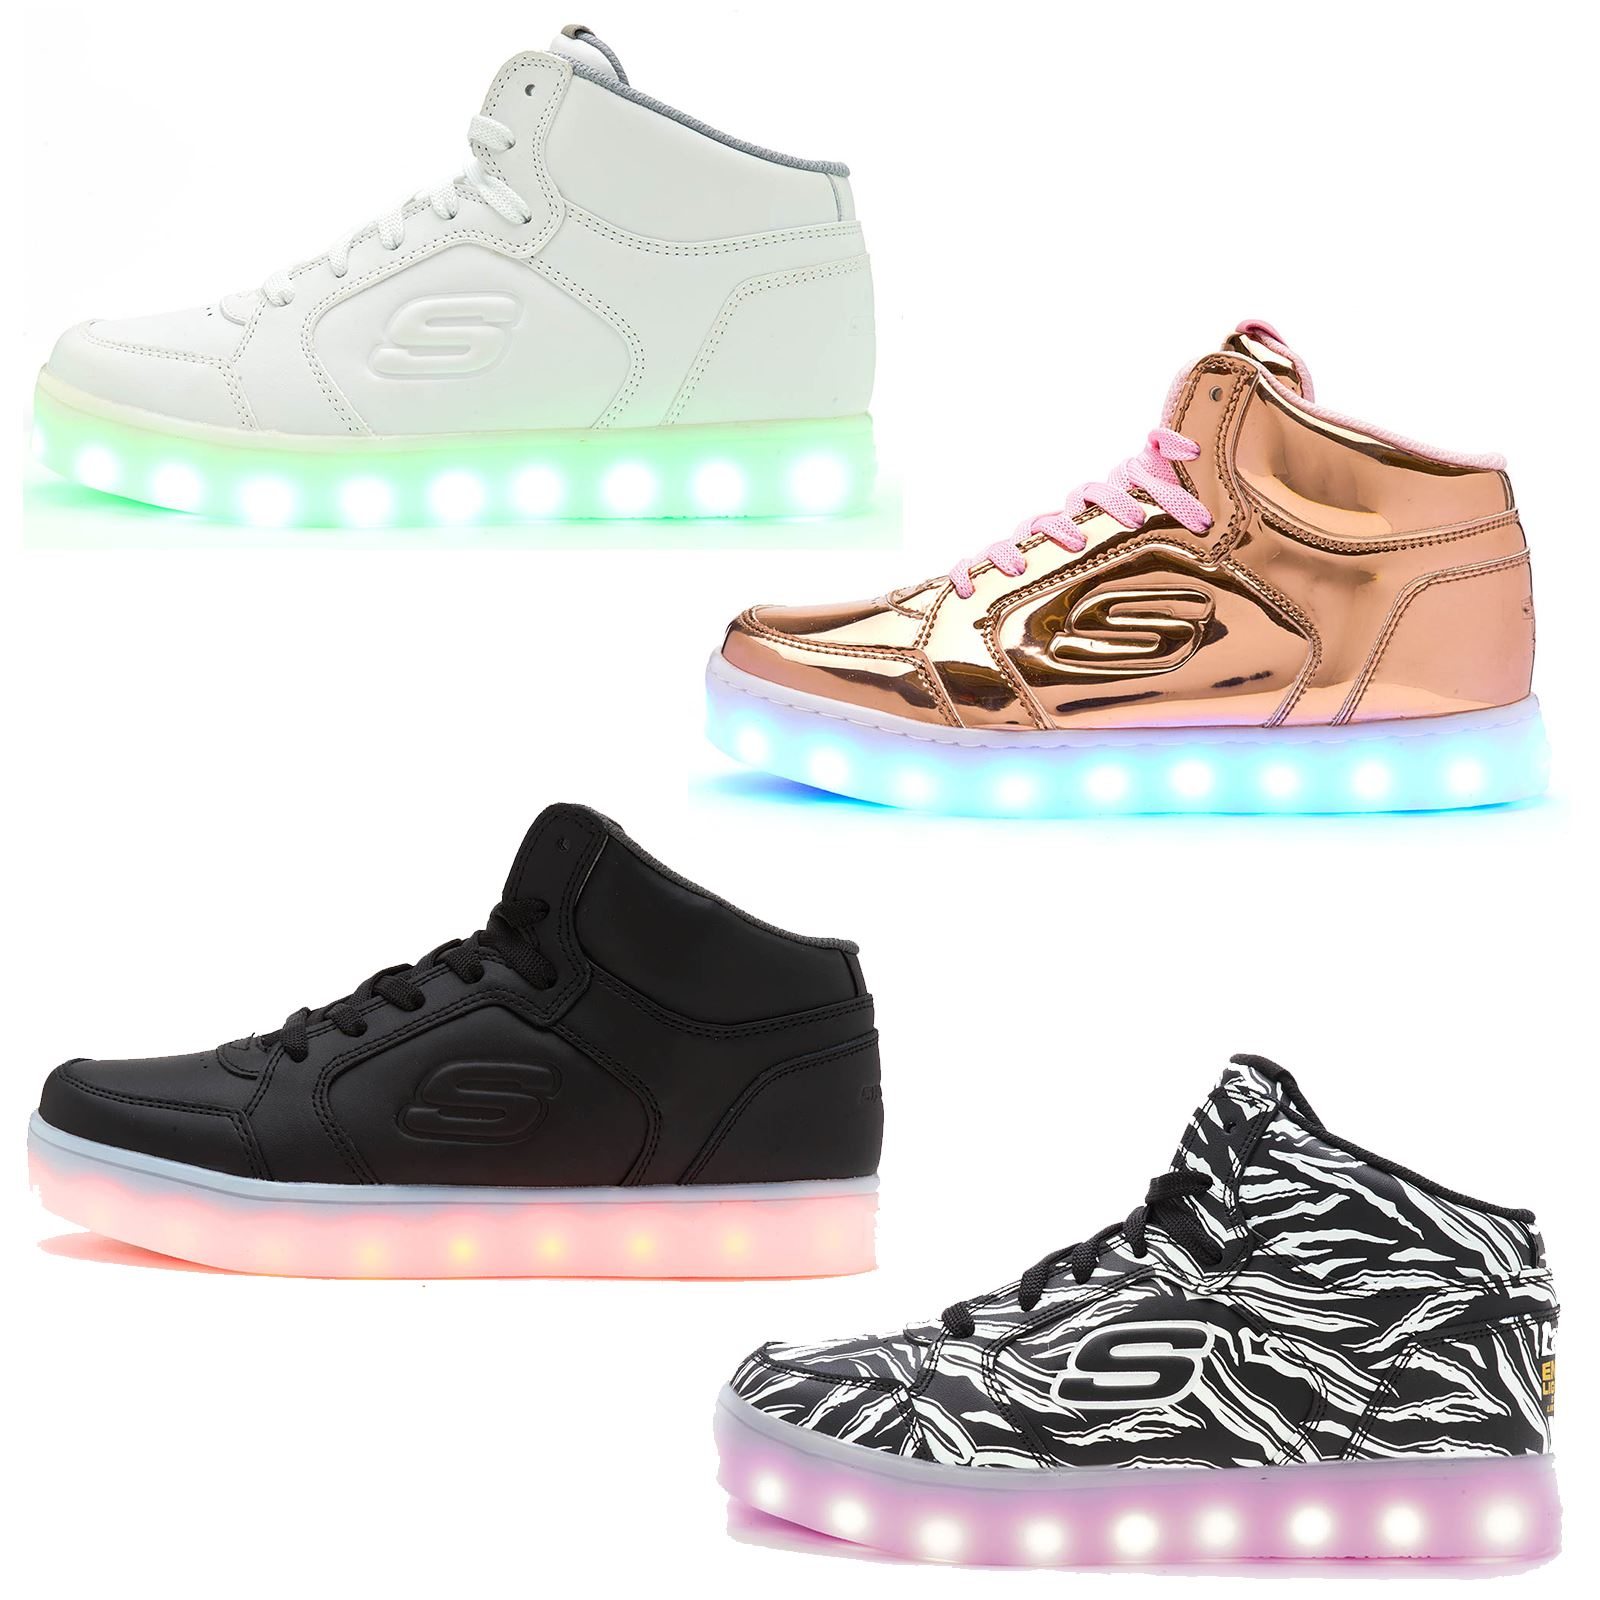 Skechers Sport Shoes Lowest Price , S Lights : Energy Lights